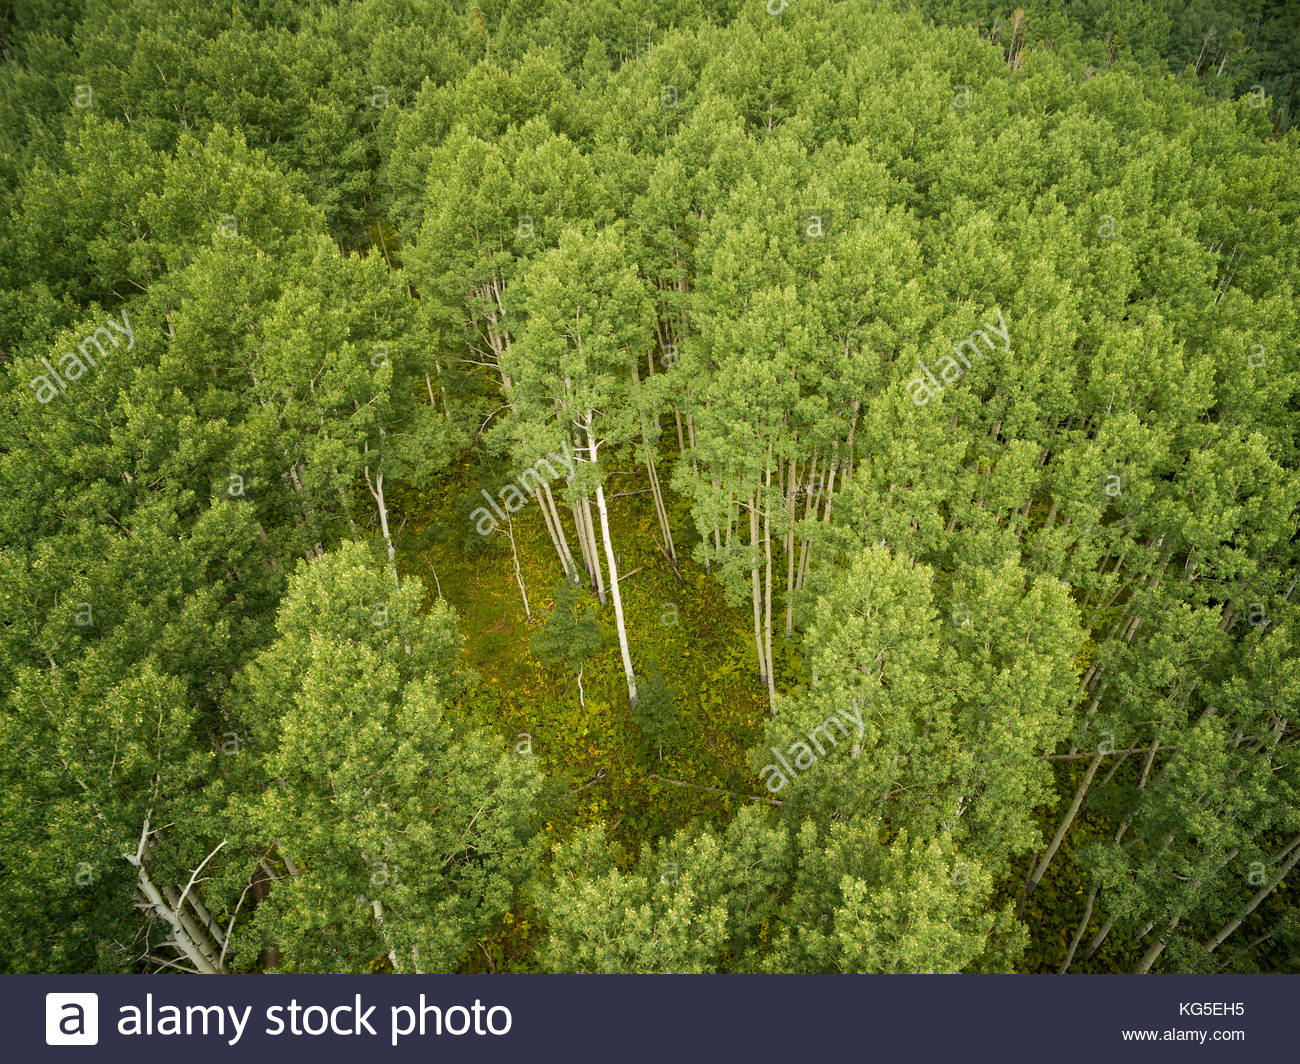 Looking down on a clearing in a Colorado aspen forest at the peak of summer green foliage. - Stock Image